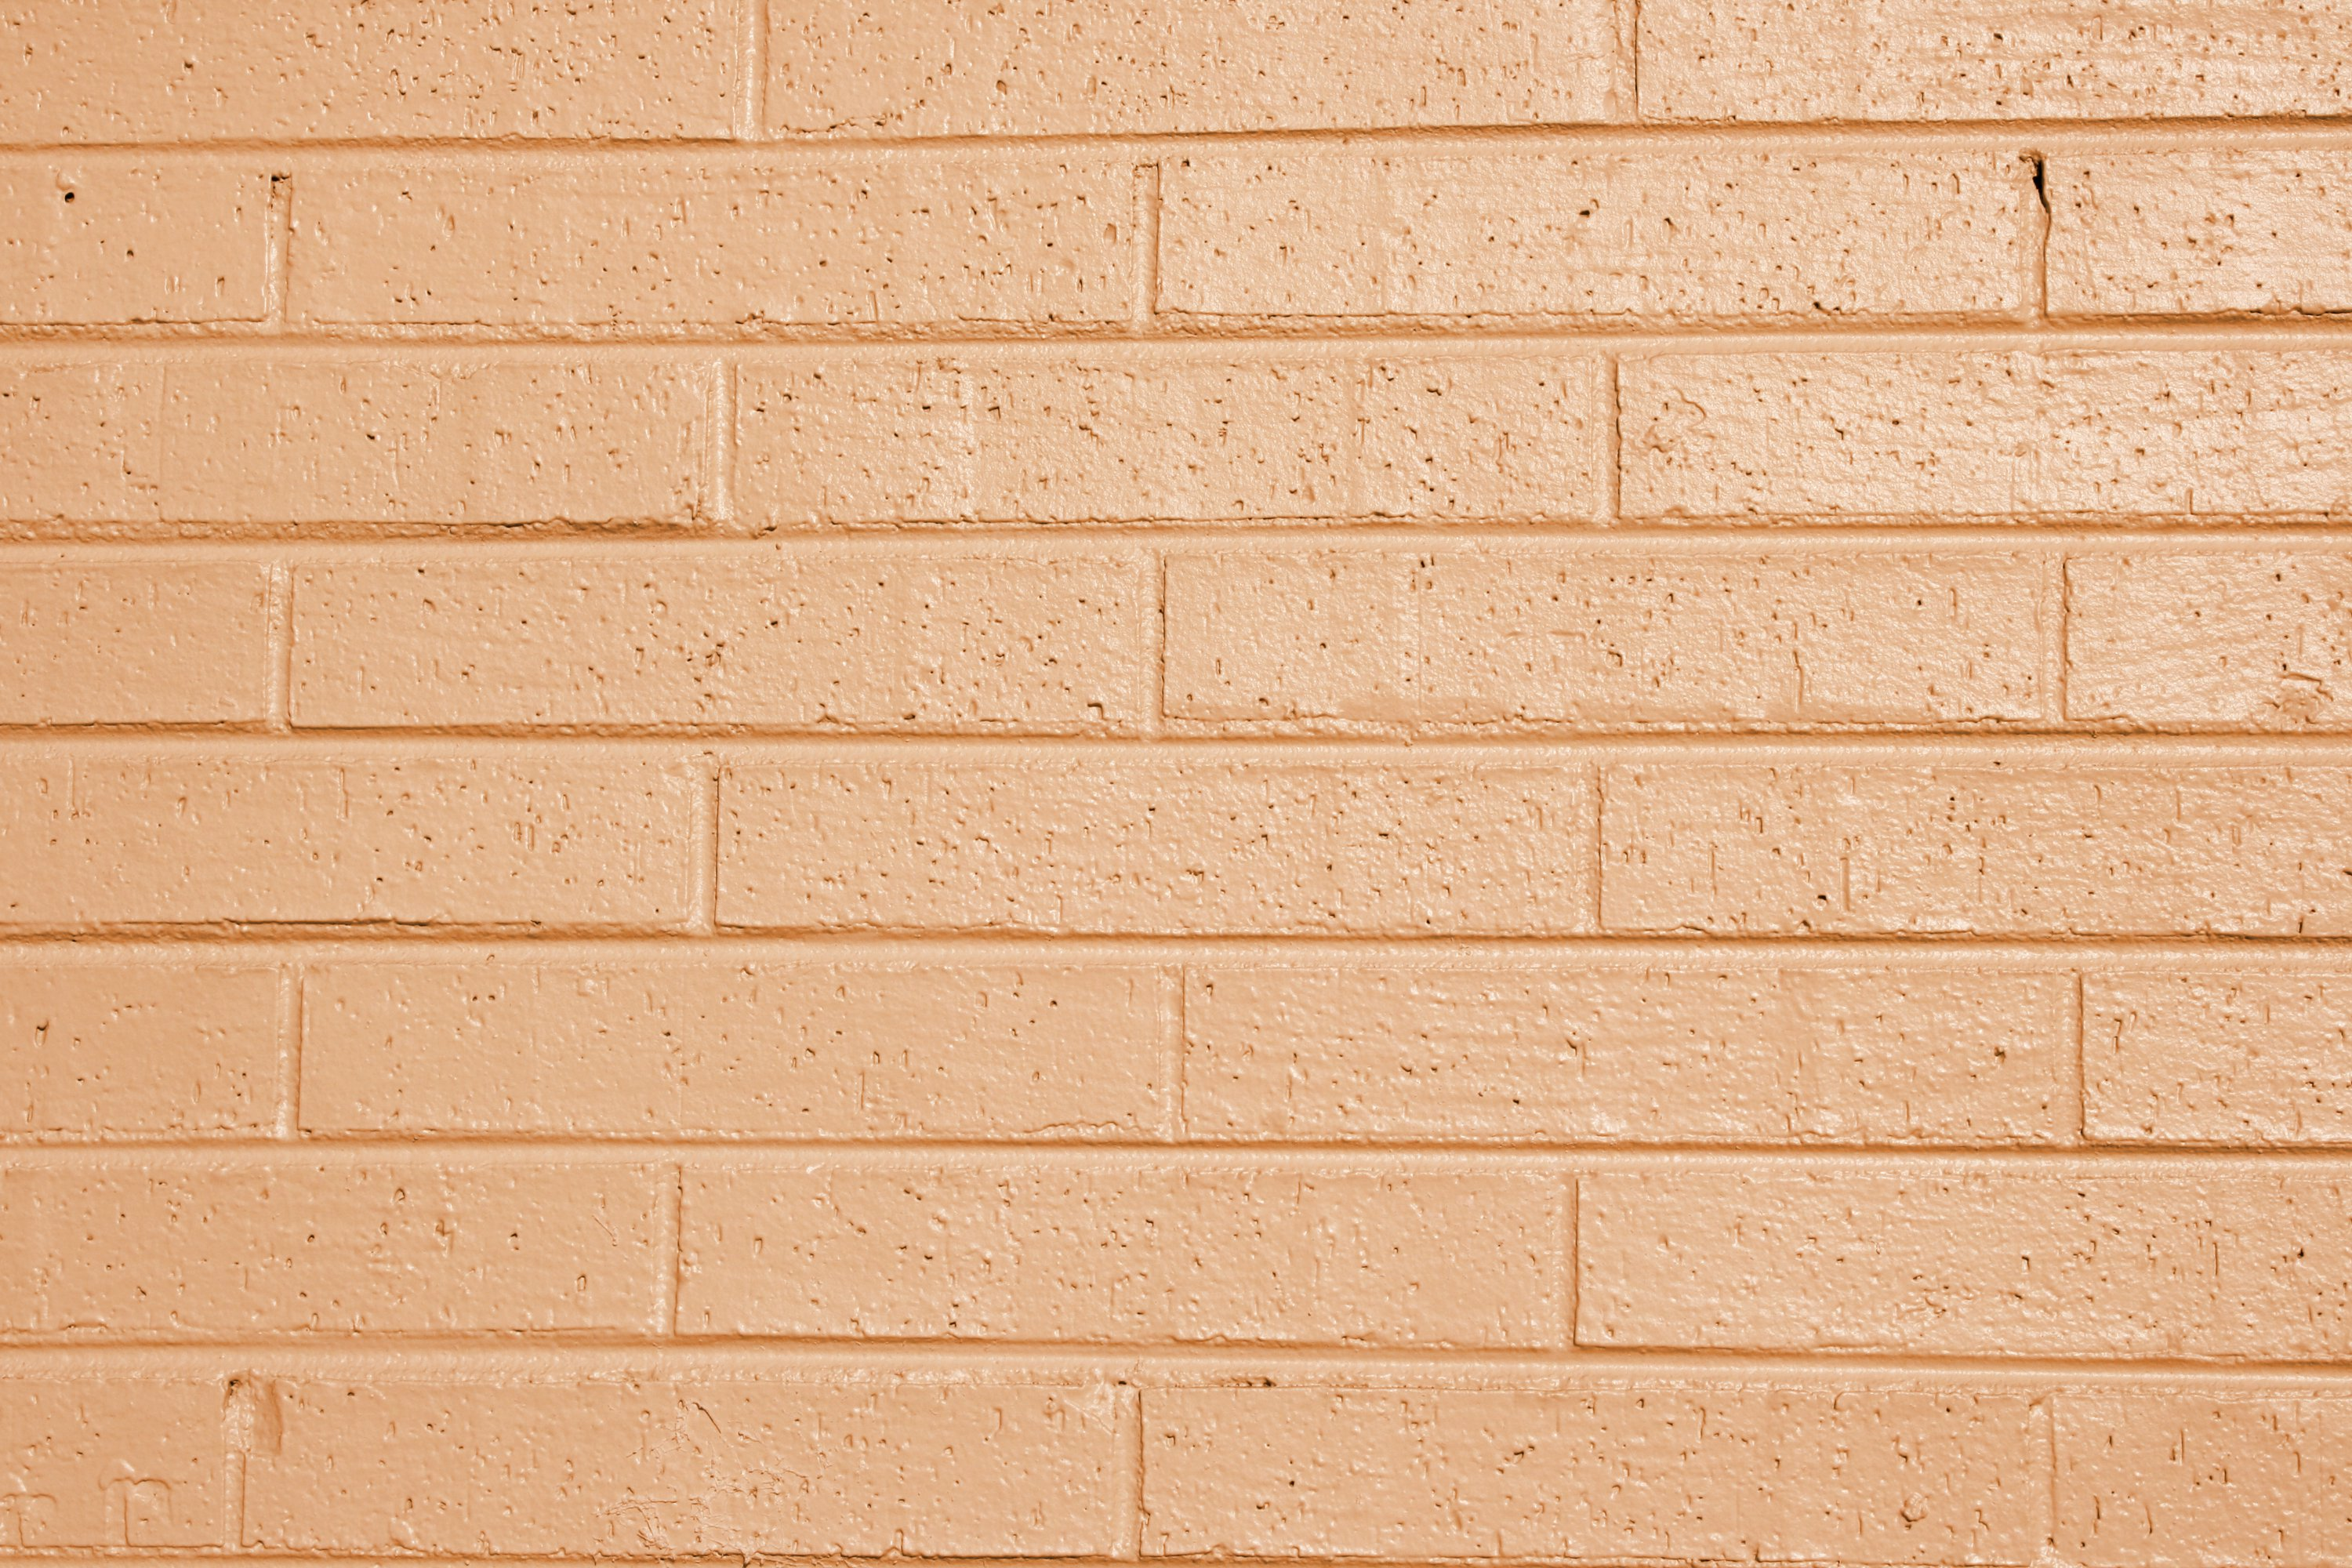 Light Orange or Peach Painted Brick Wall Texture Picture ...